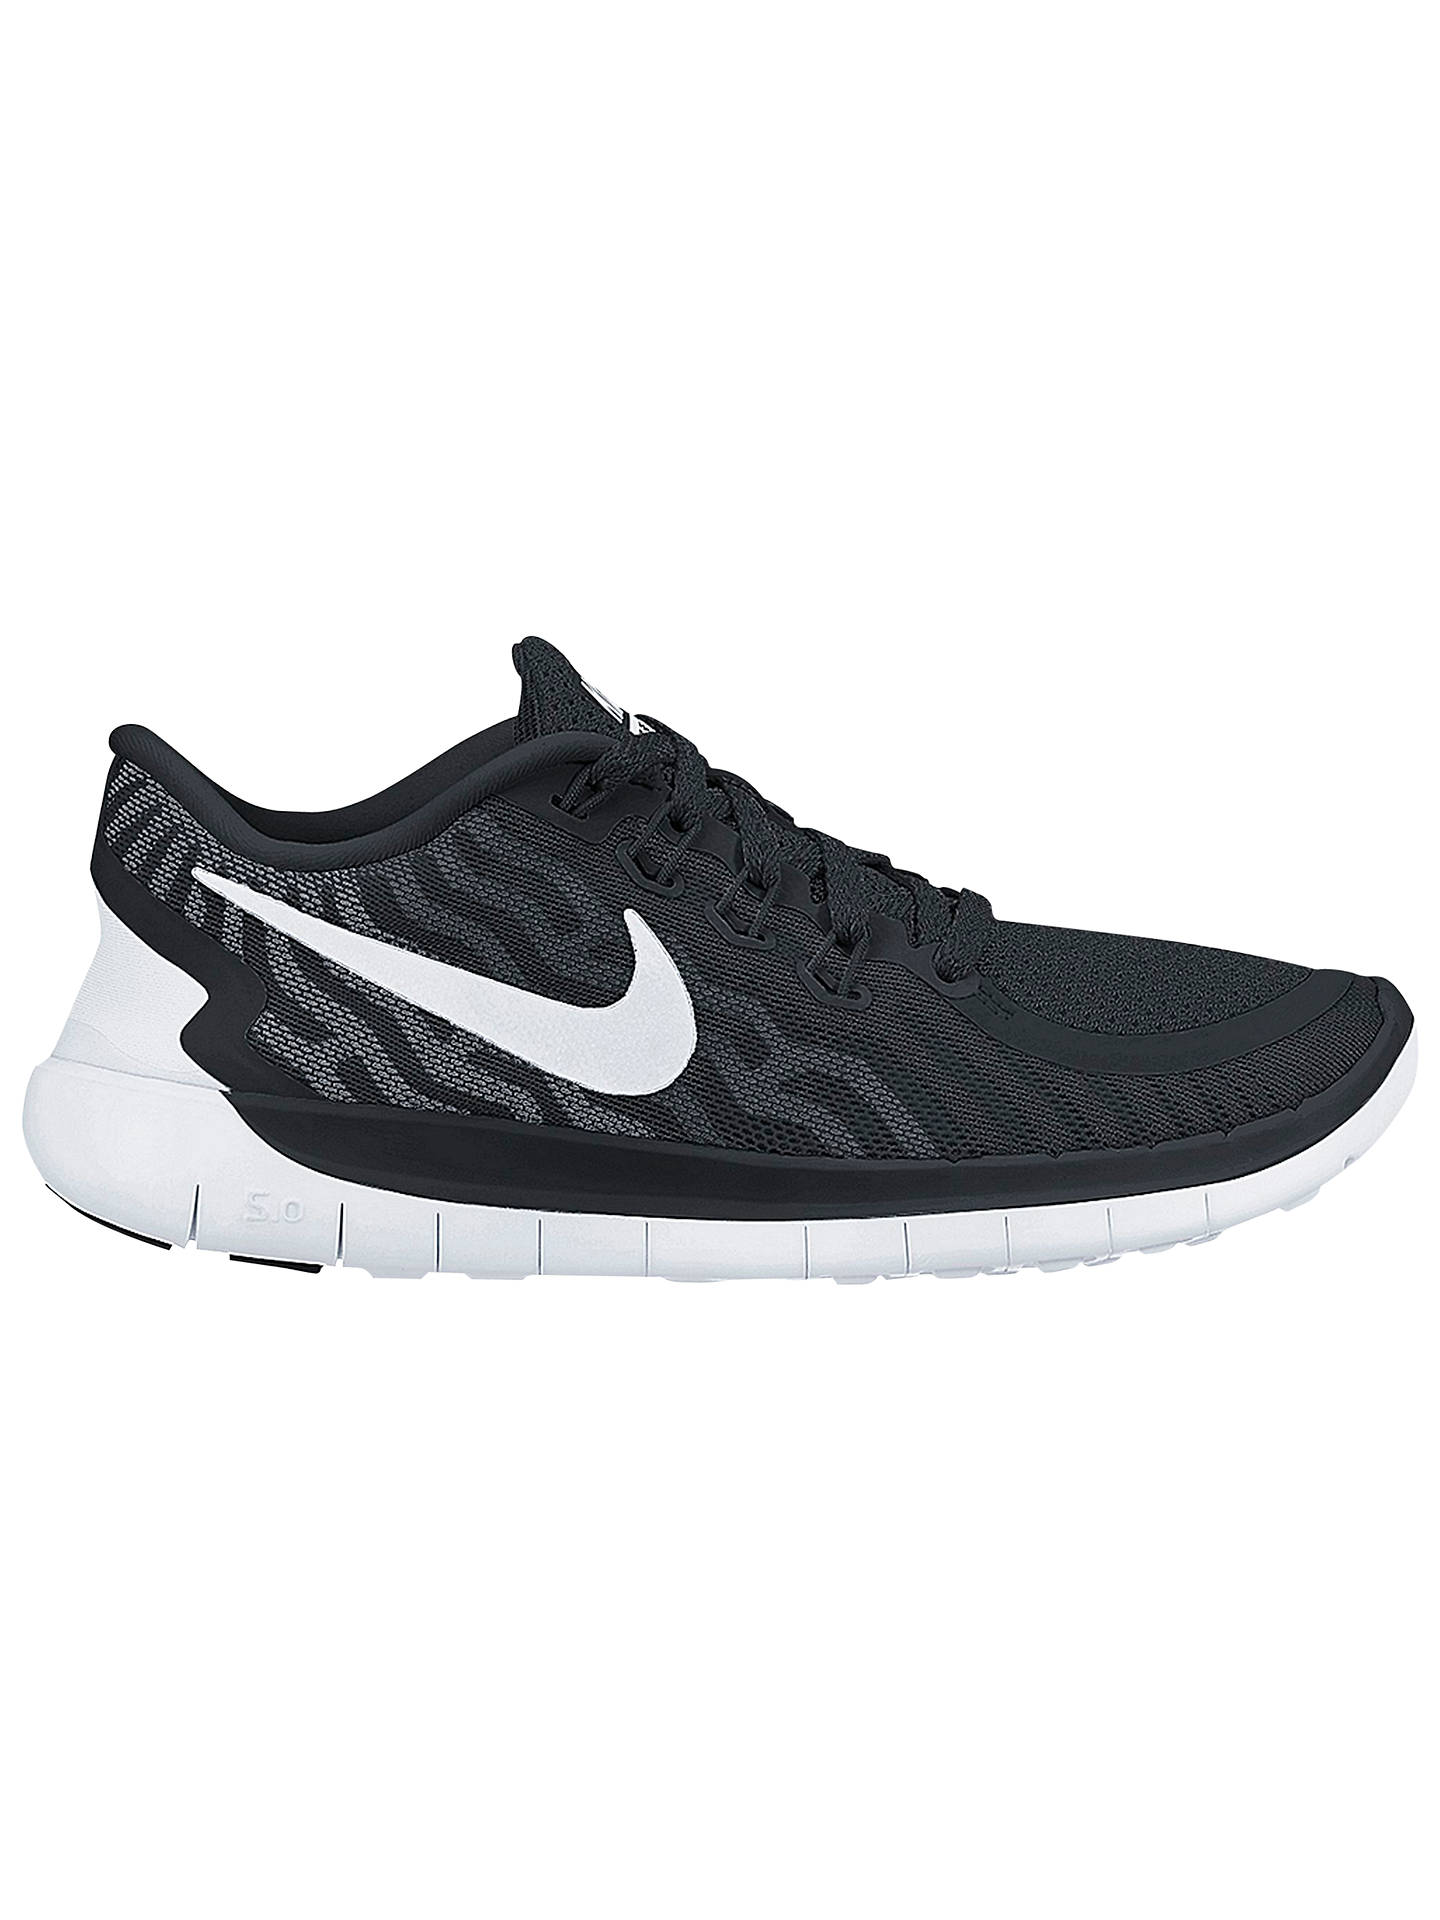 كبح مطحنة نباتي Nike Free Run Mens Sale Uk Dsvdedommel Com